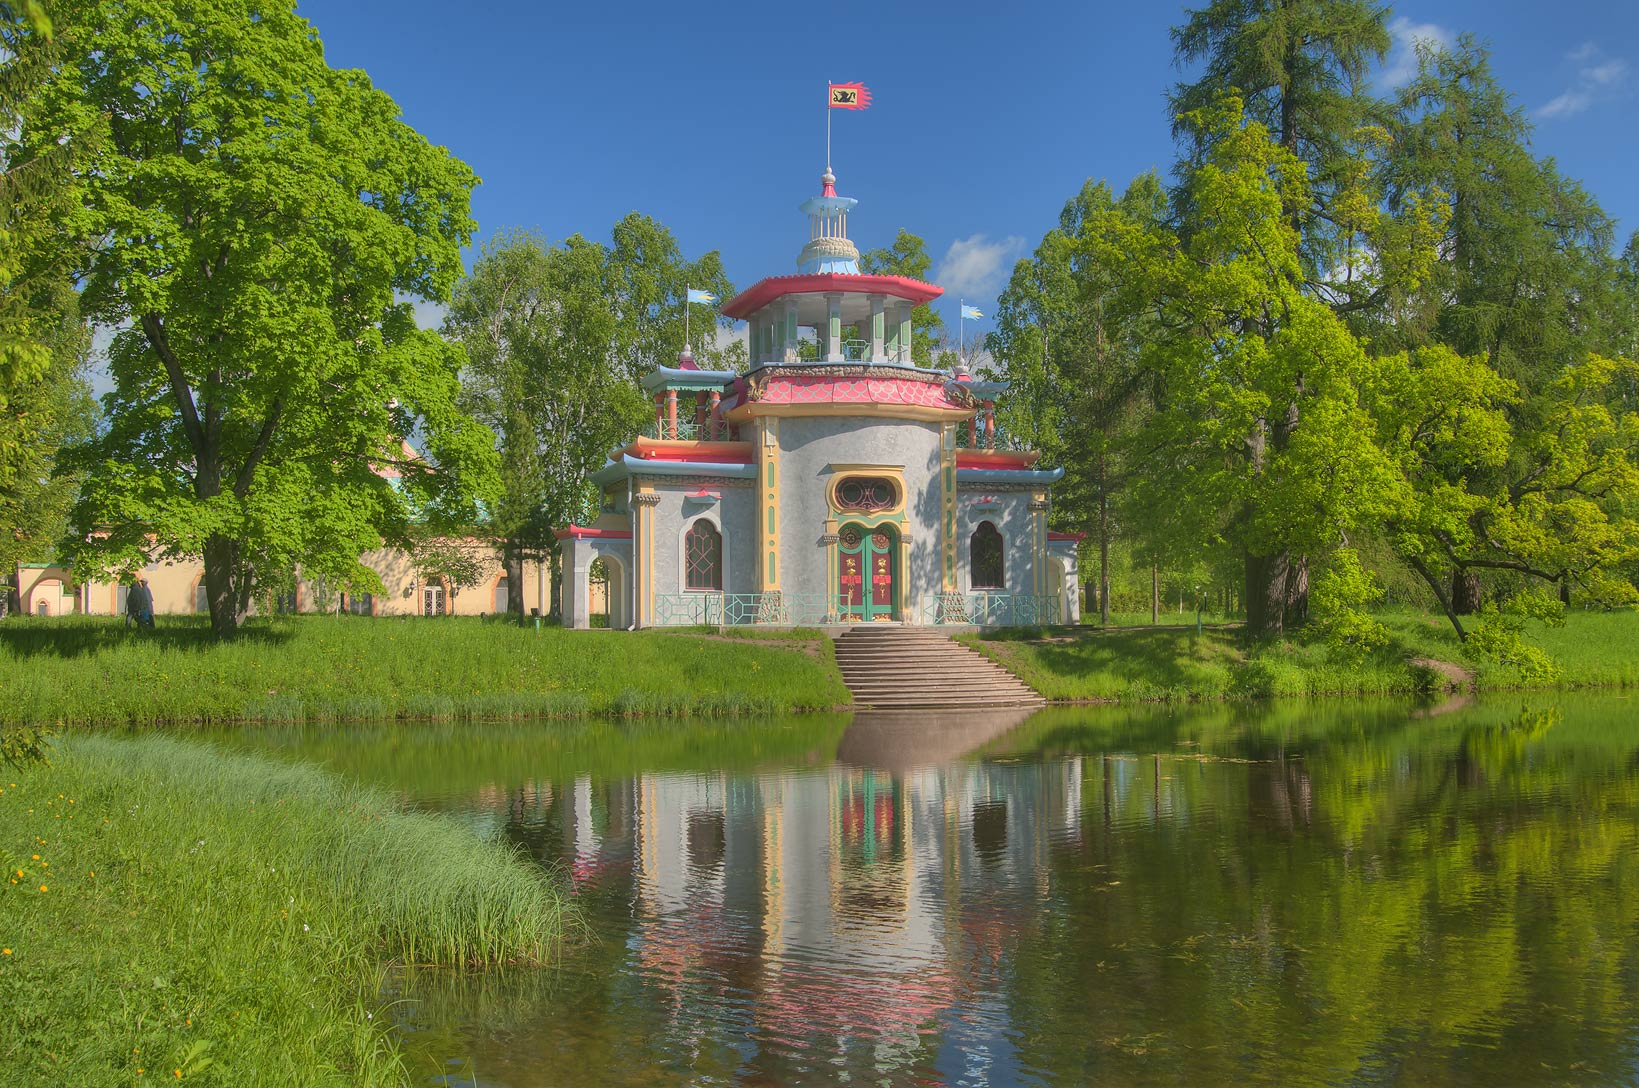 Chinese Summer House (Creaking, or Pagoda, 1778...south from St.Petersburg, Russia